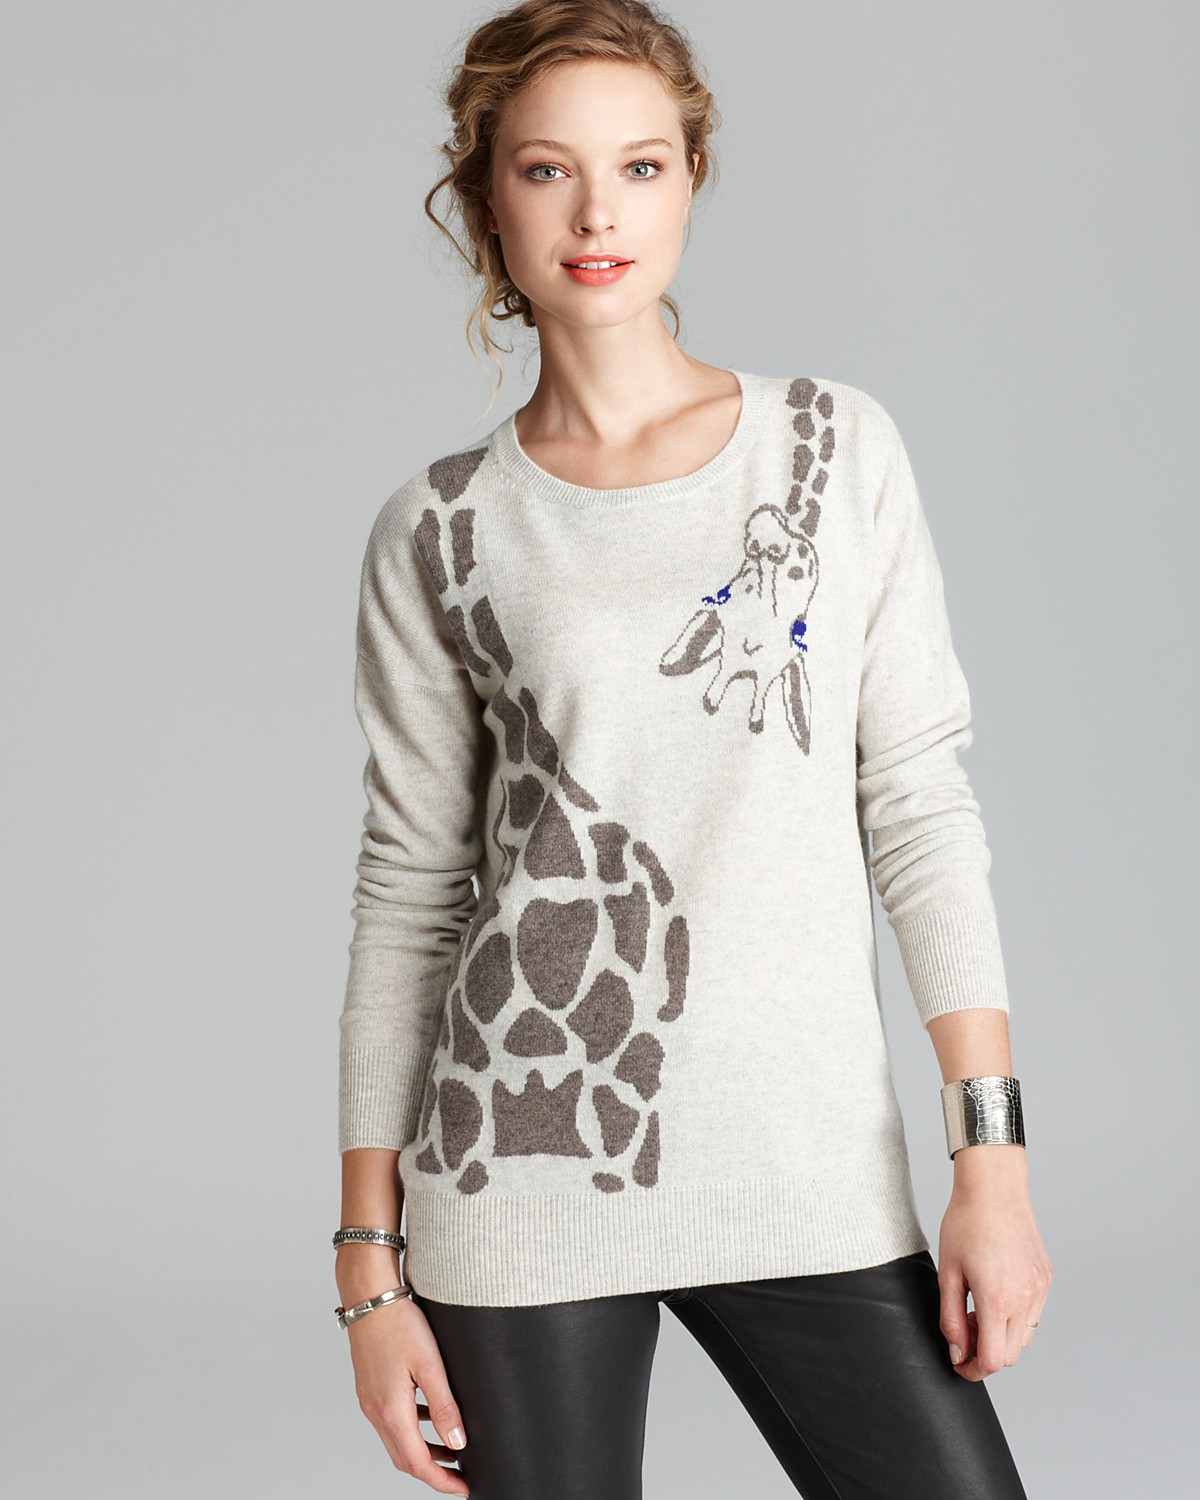 AQUA Cashmere Sweater - Giraffe Wrap Around Intarsia | Bloomingdale's